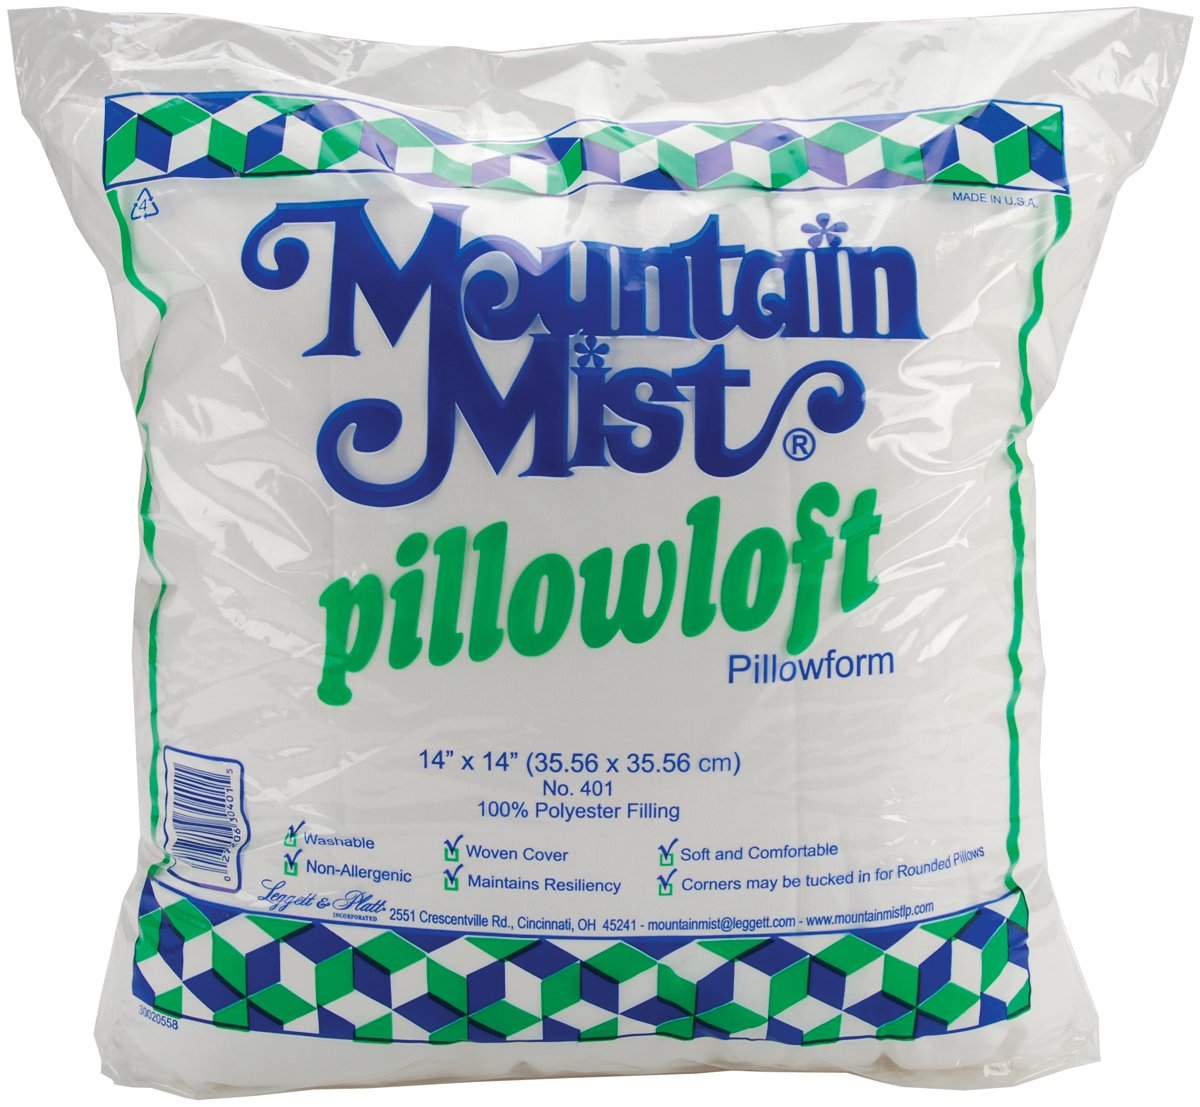 Mountain Mist Pillowloft Pillowforms, 14-inch-by-14-inch Notions - In Network 401MM